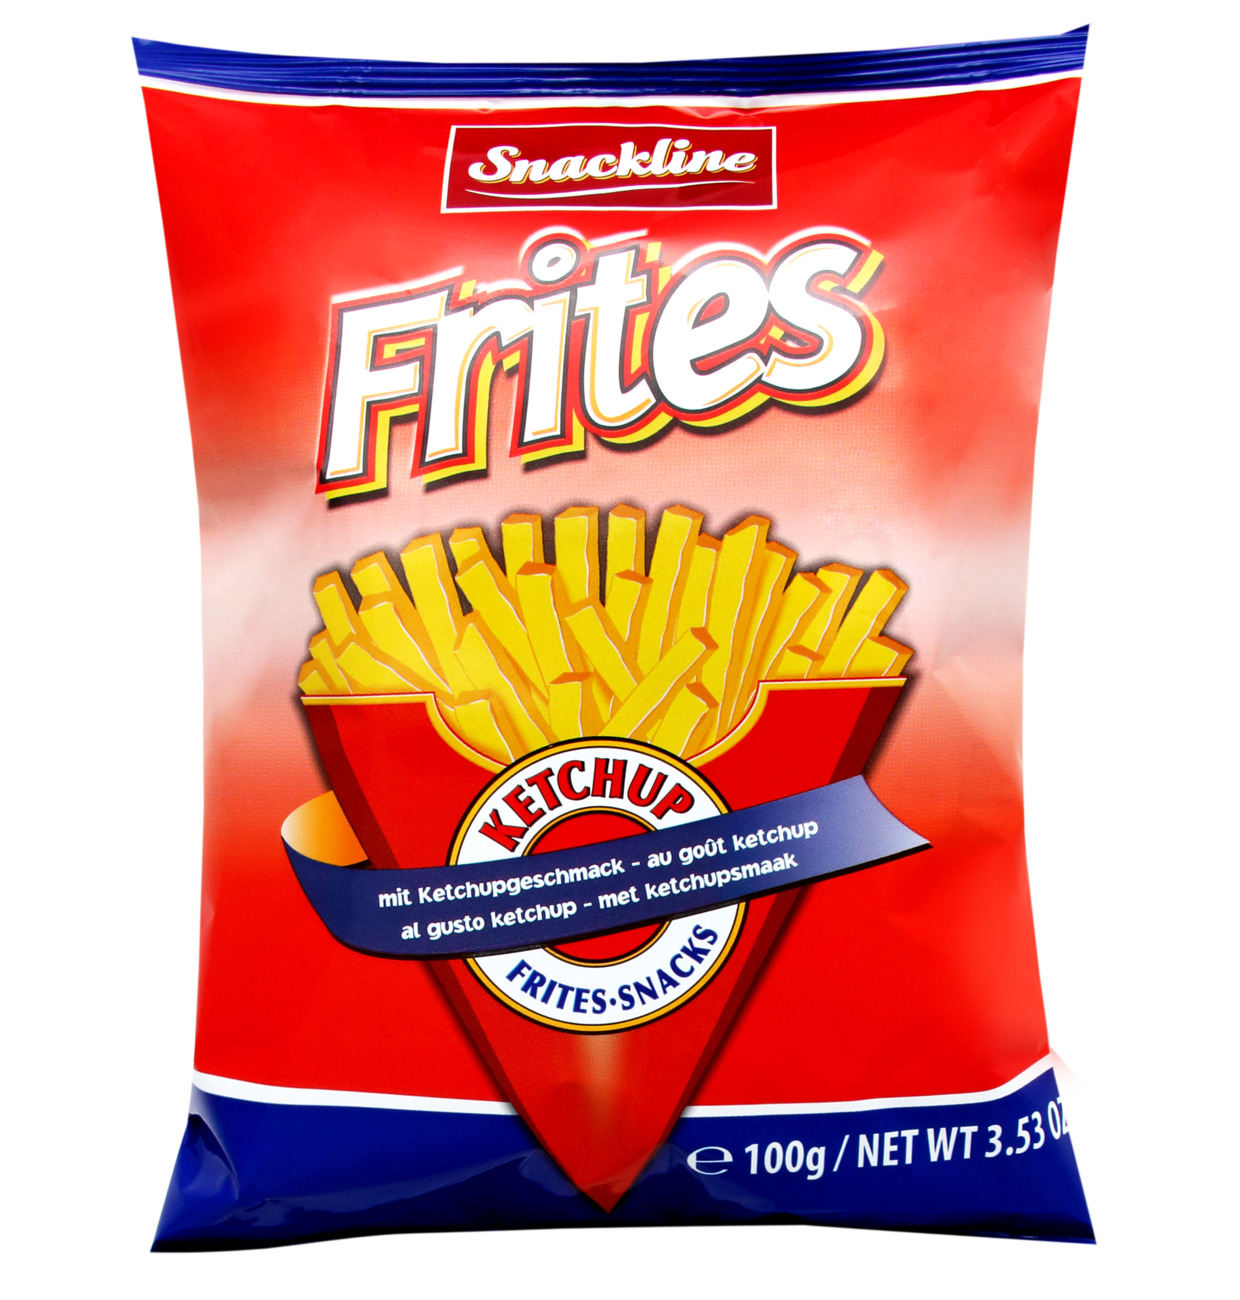 Snackline Frites-snacks with ketchup flavor 100g